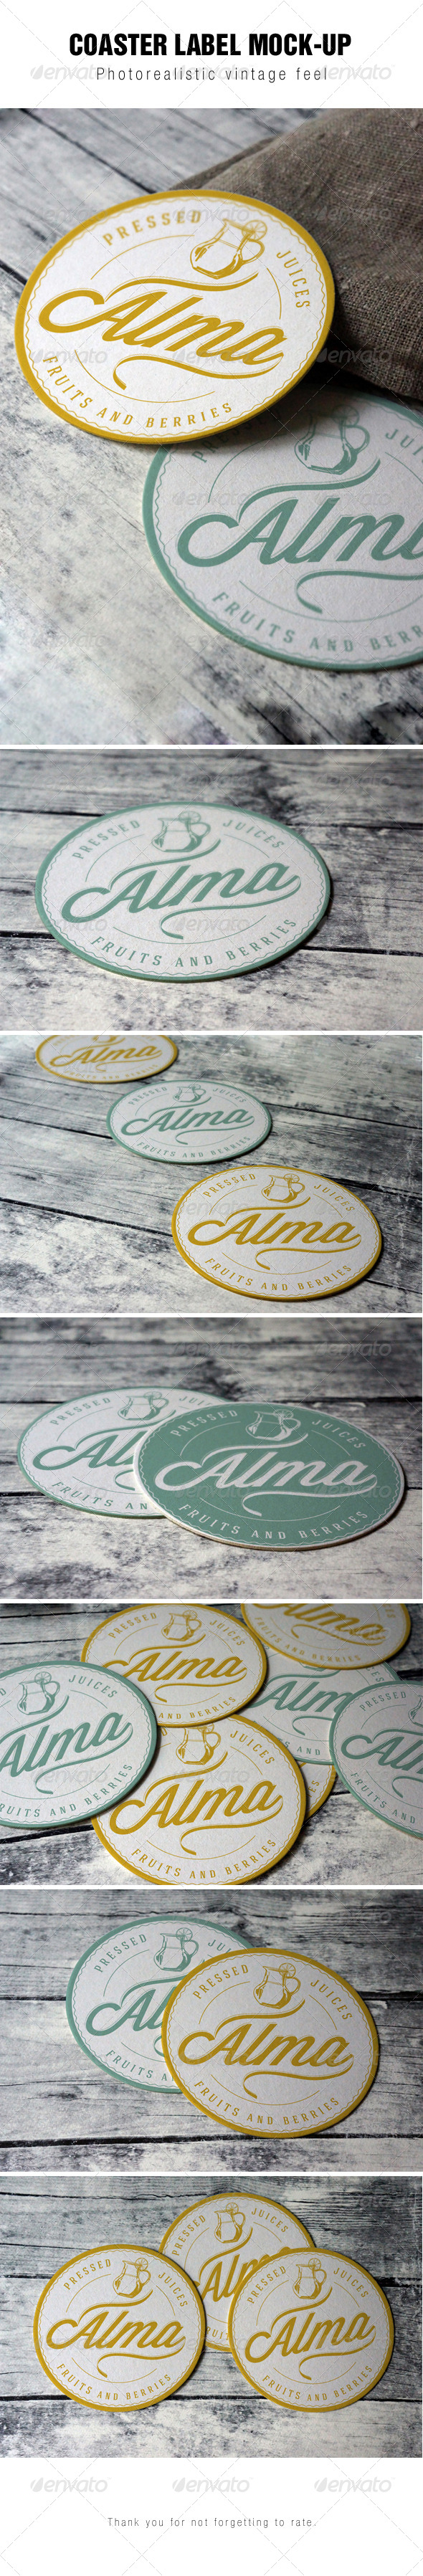 Coaster Label Mockup - Stationery Print